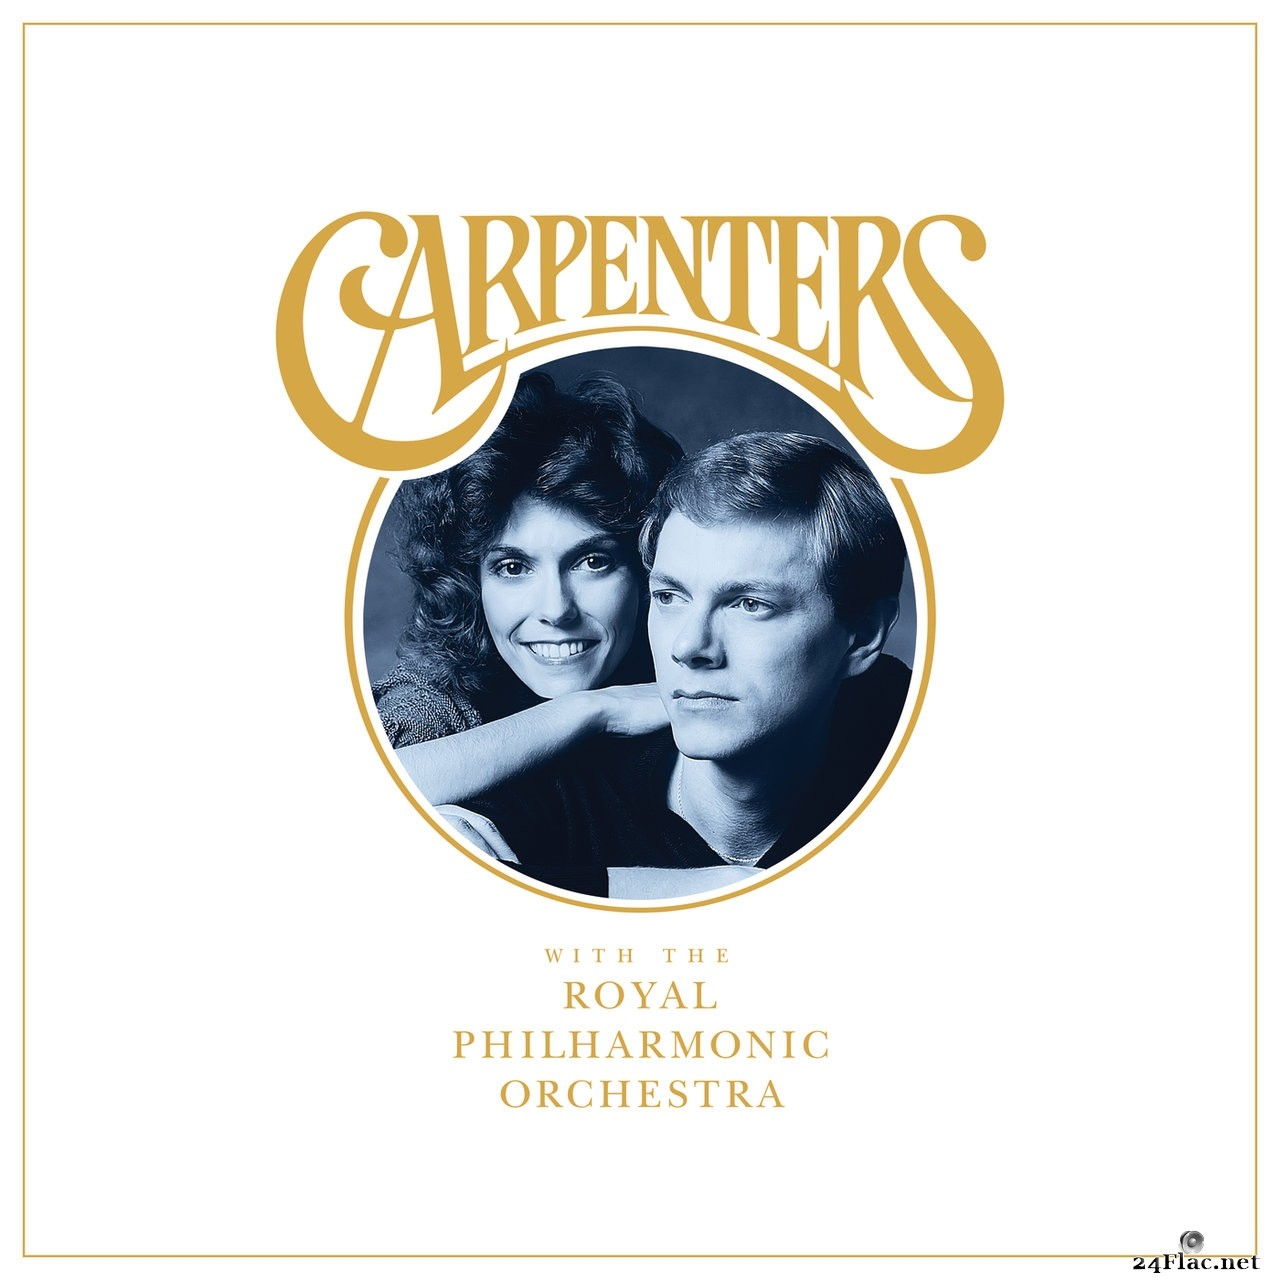 The Carpenters - Carpenters With The Royal Philharmonic Orchestra (2018) Hi-Res